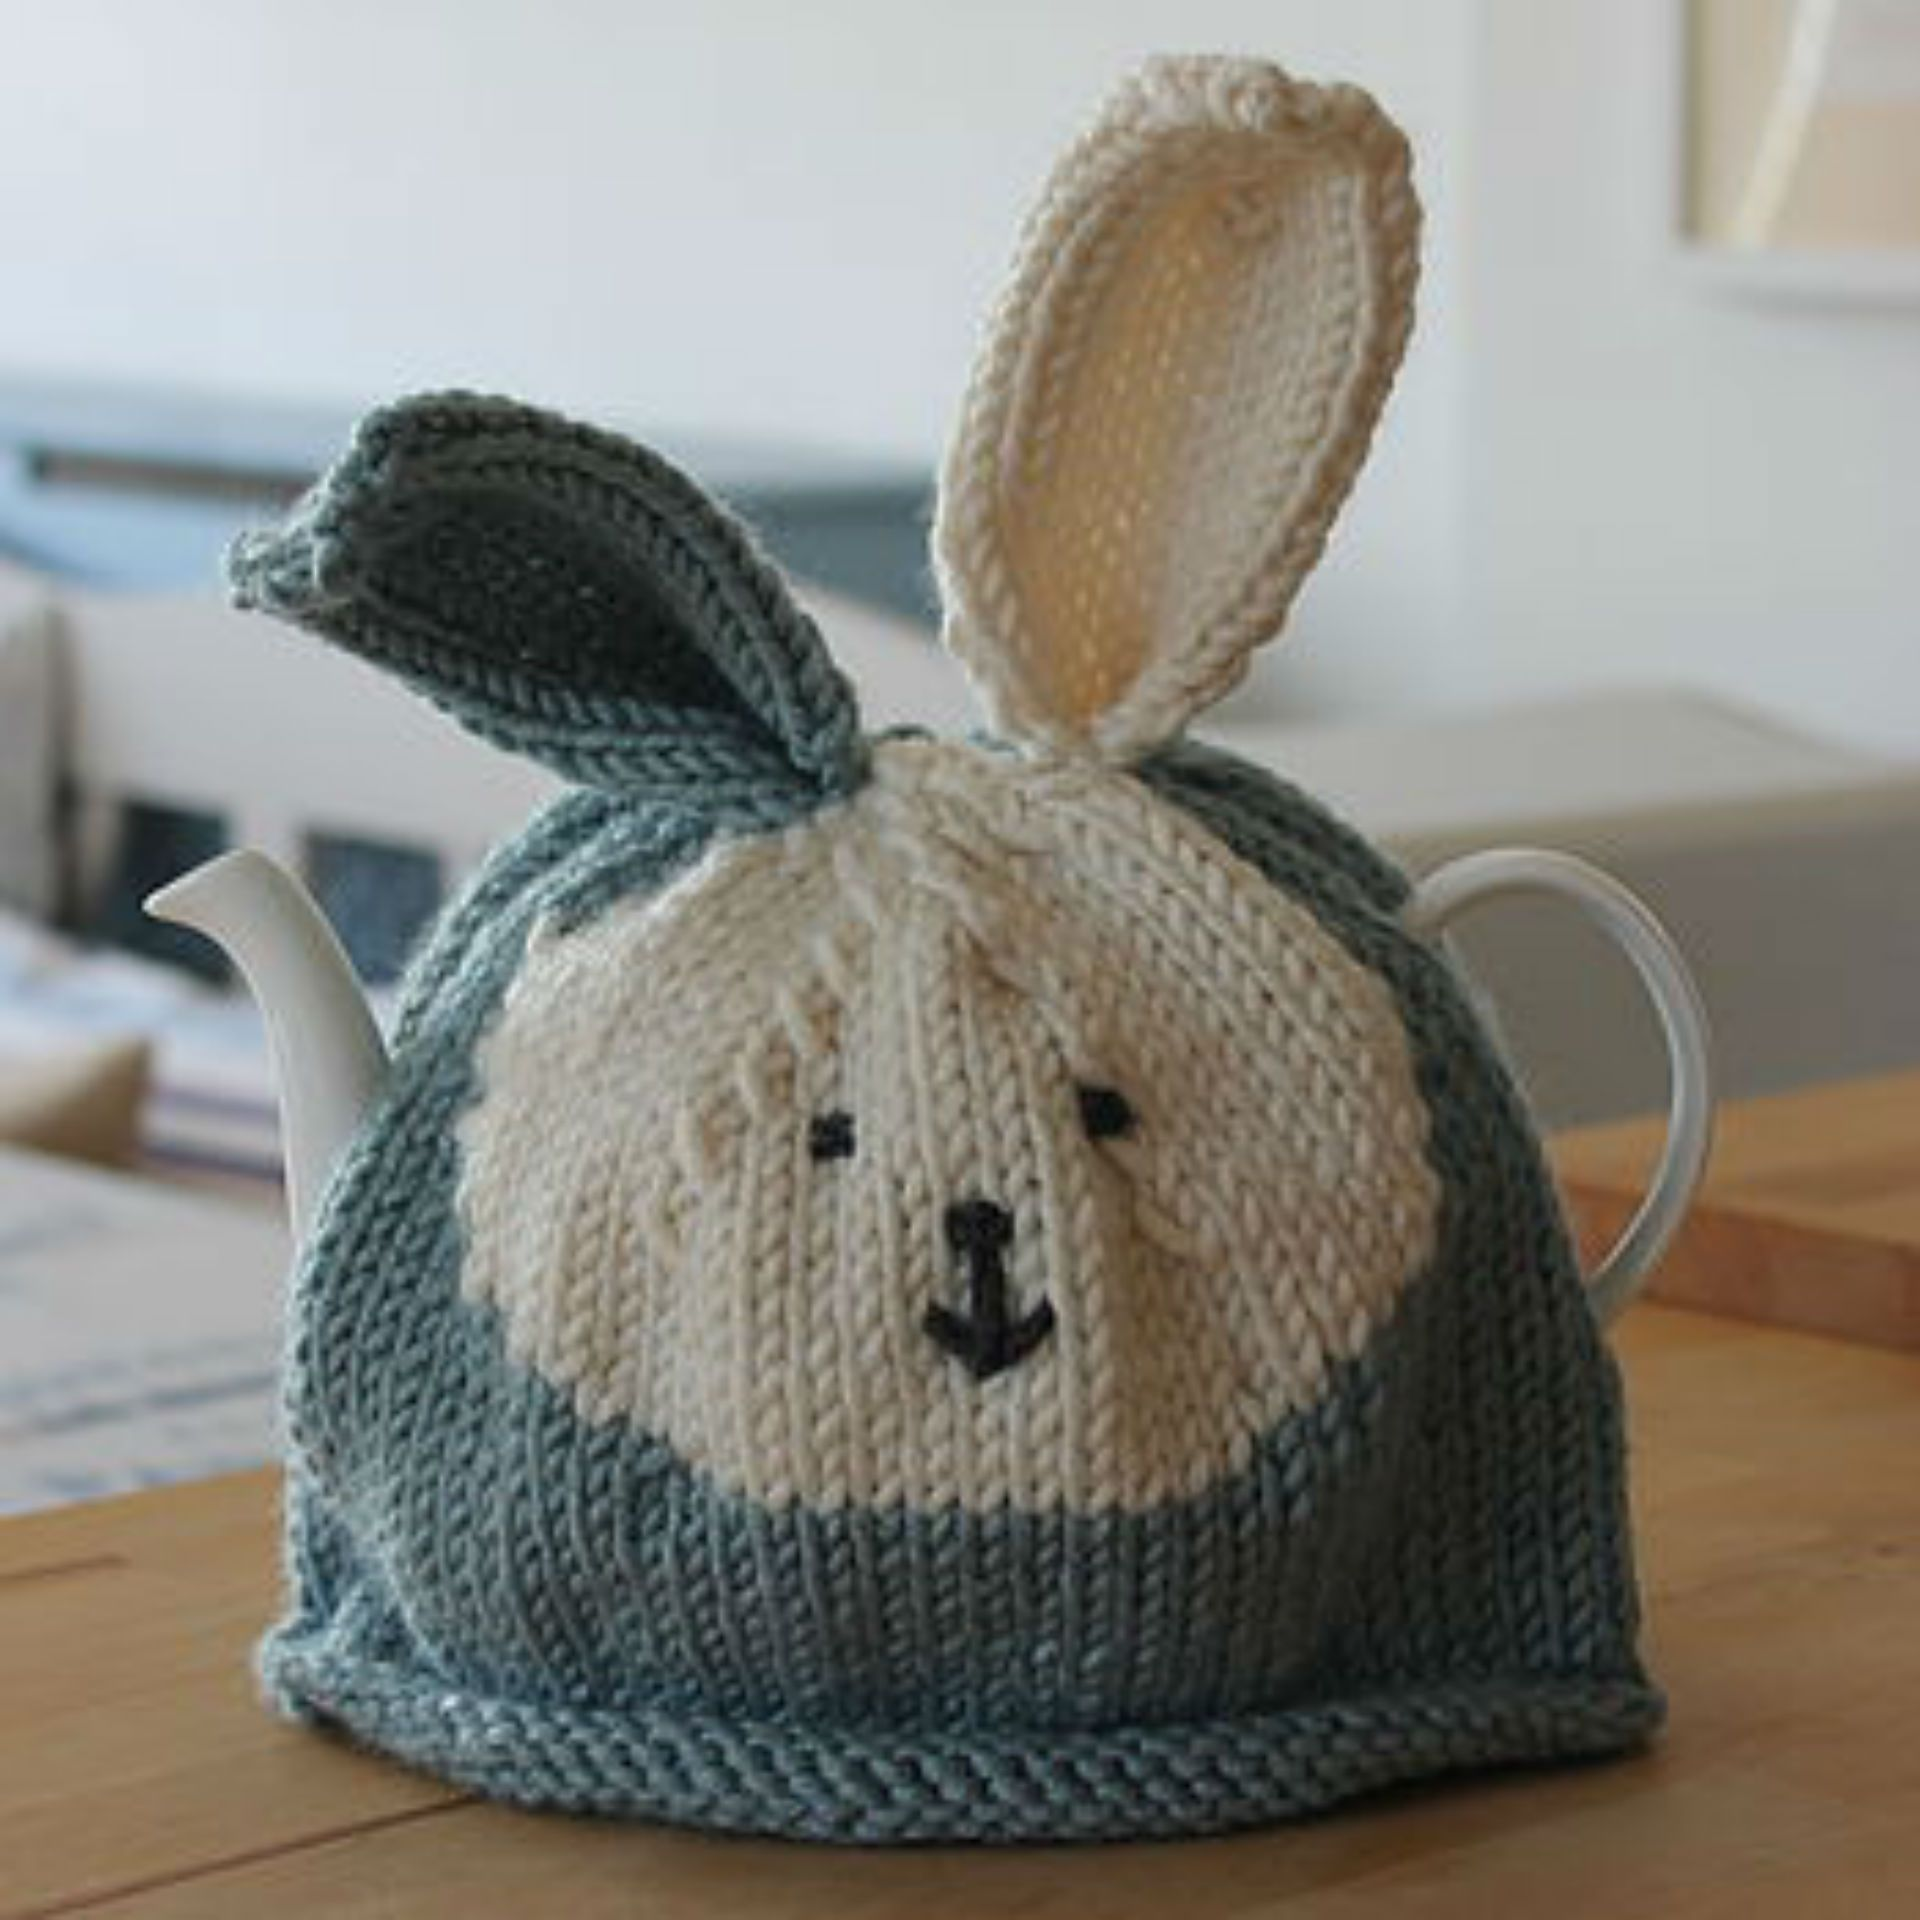 Knitted Teapot Cosy Patterns : Bunny Rabbit Tea Cosy Knitting Kit Toys Pinterest Tea cosies, Crochet a...